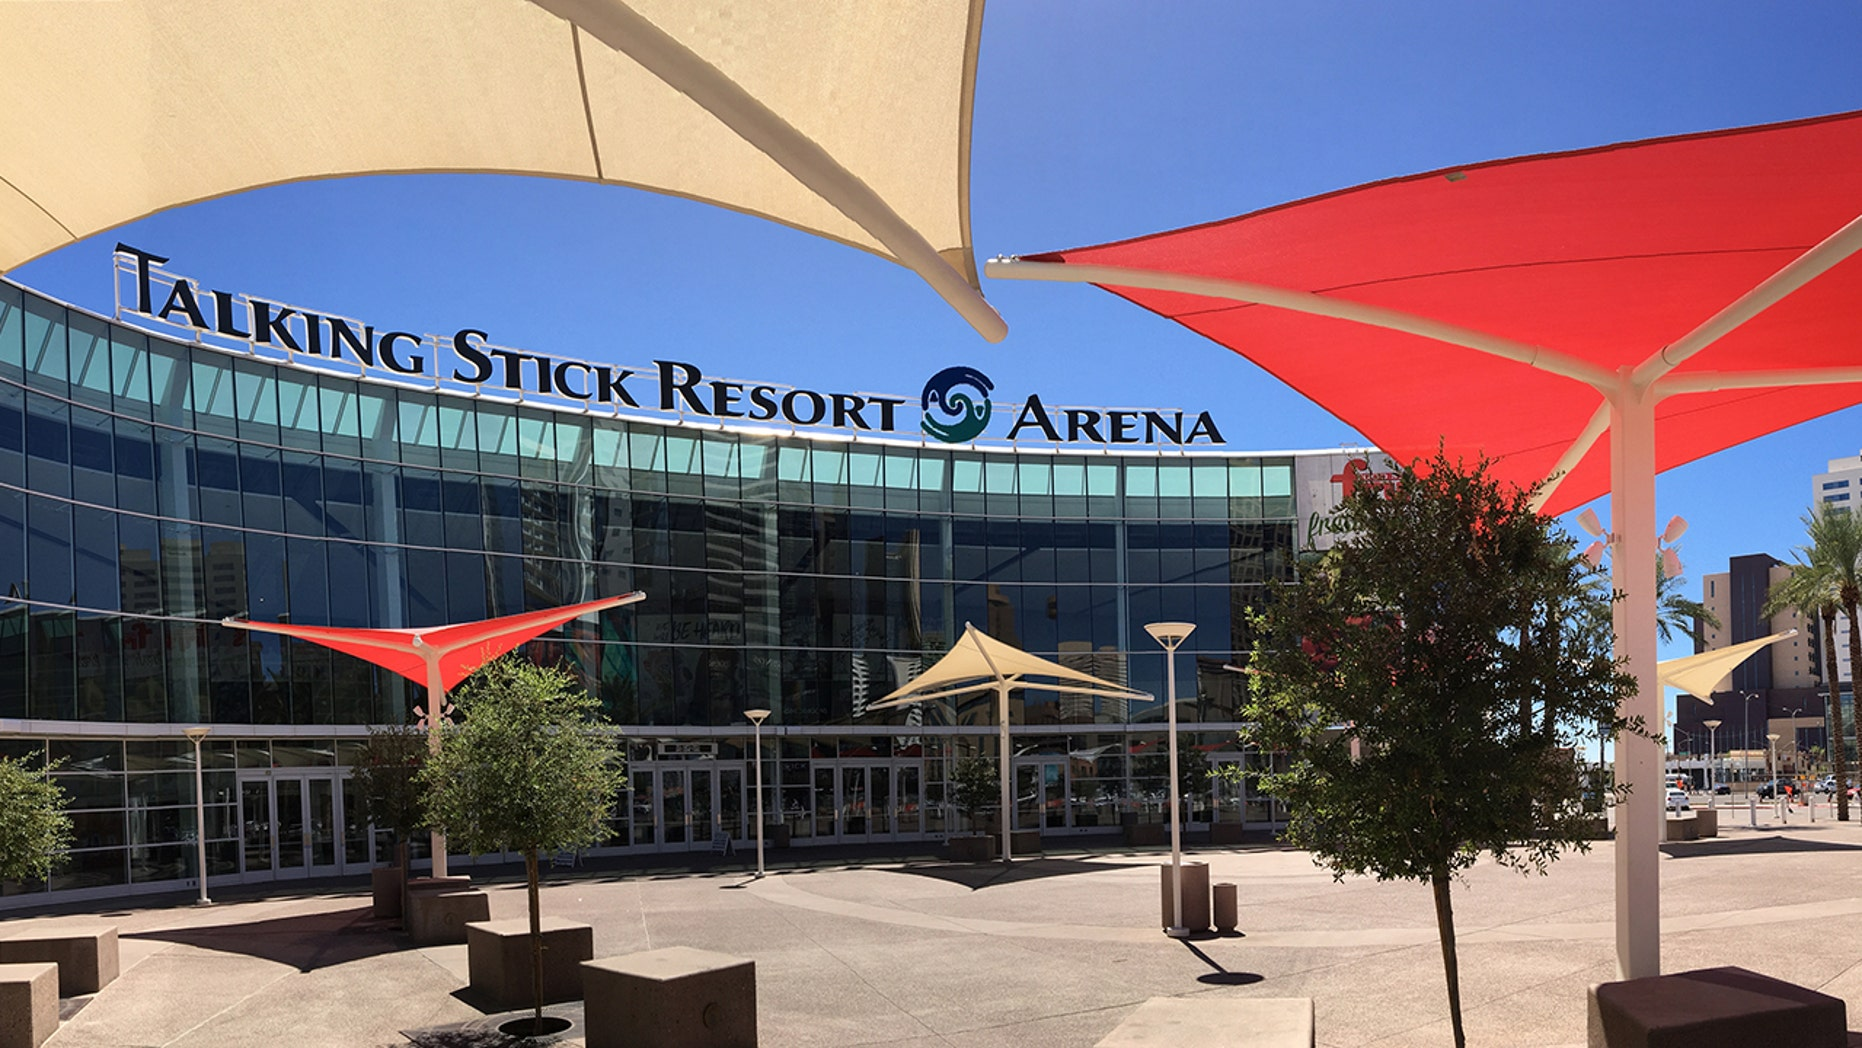 Talking Stick Resort Arena will get millions for renovations.